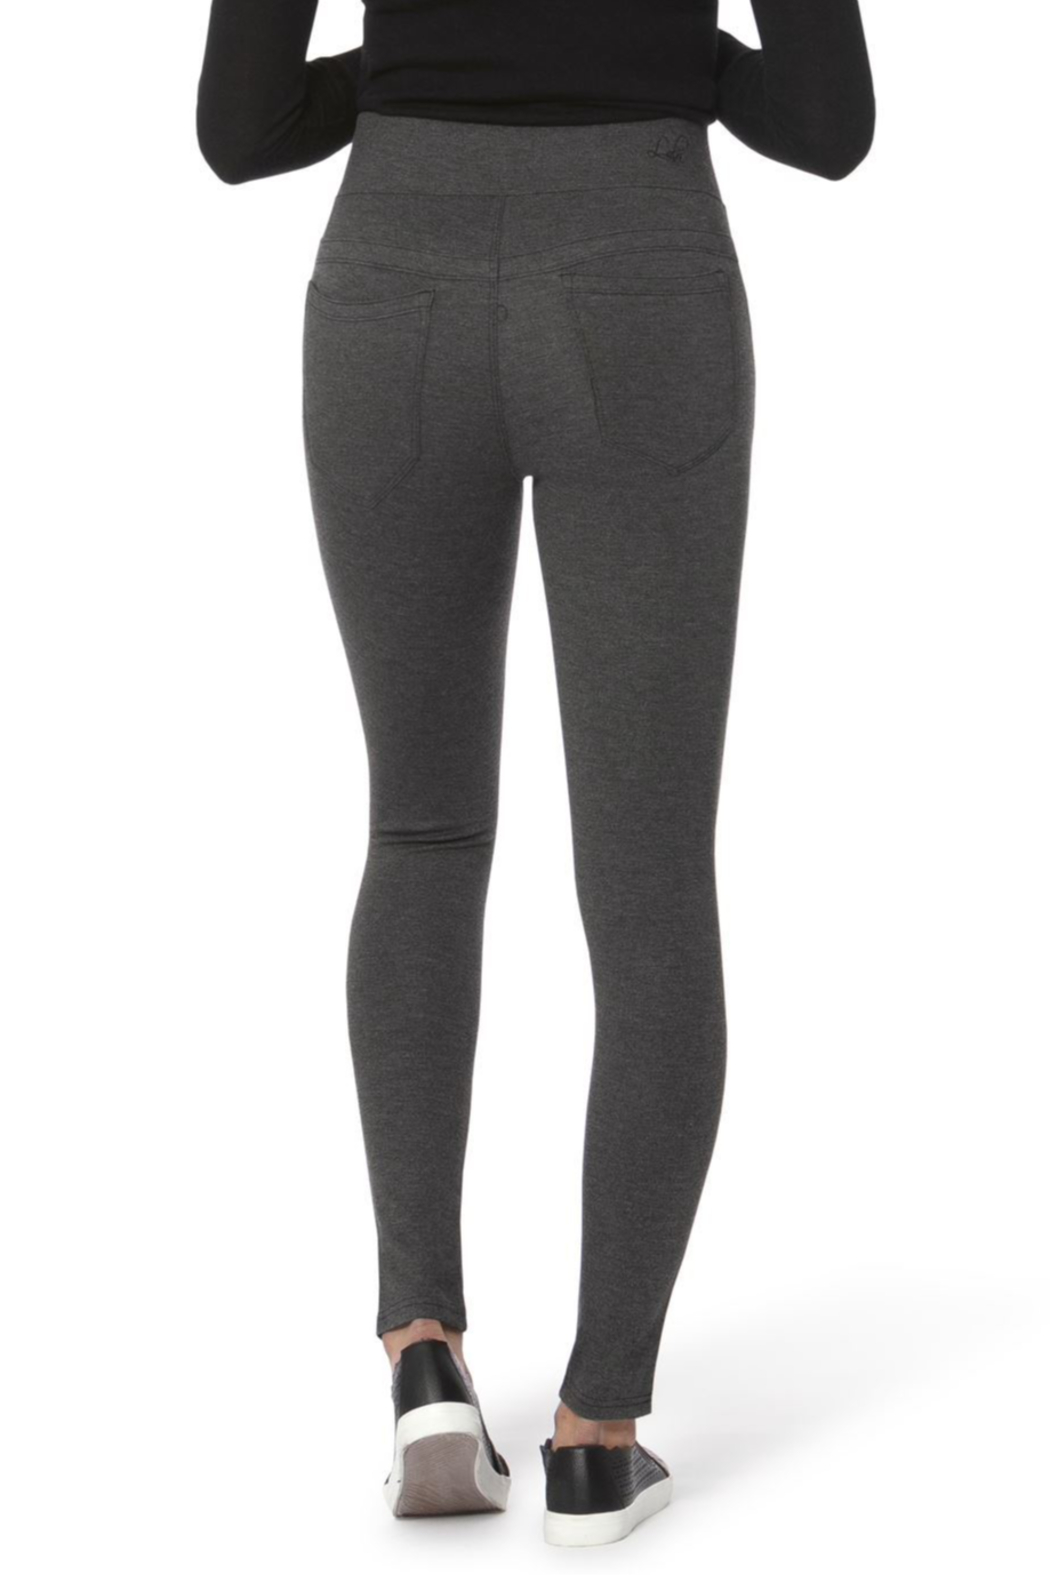 Lola Jeans Anna Mid Rise Pull on Skinny Pants - Side Cropped Image